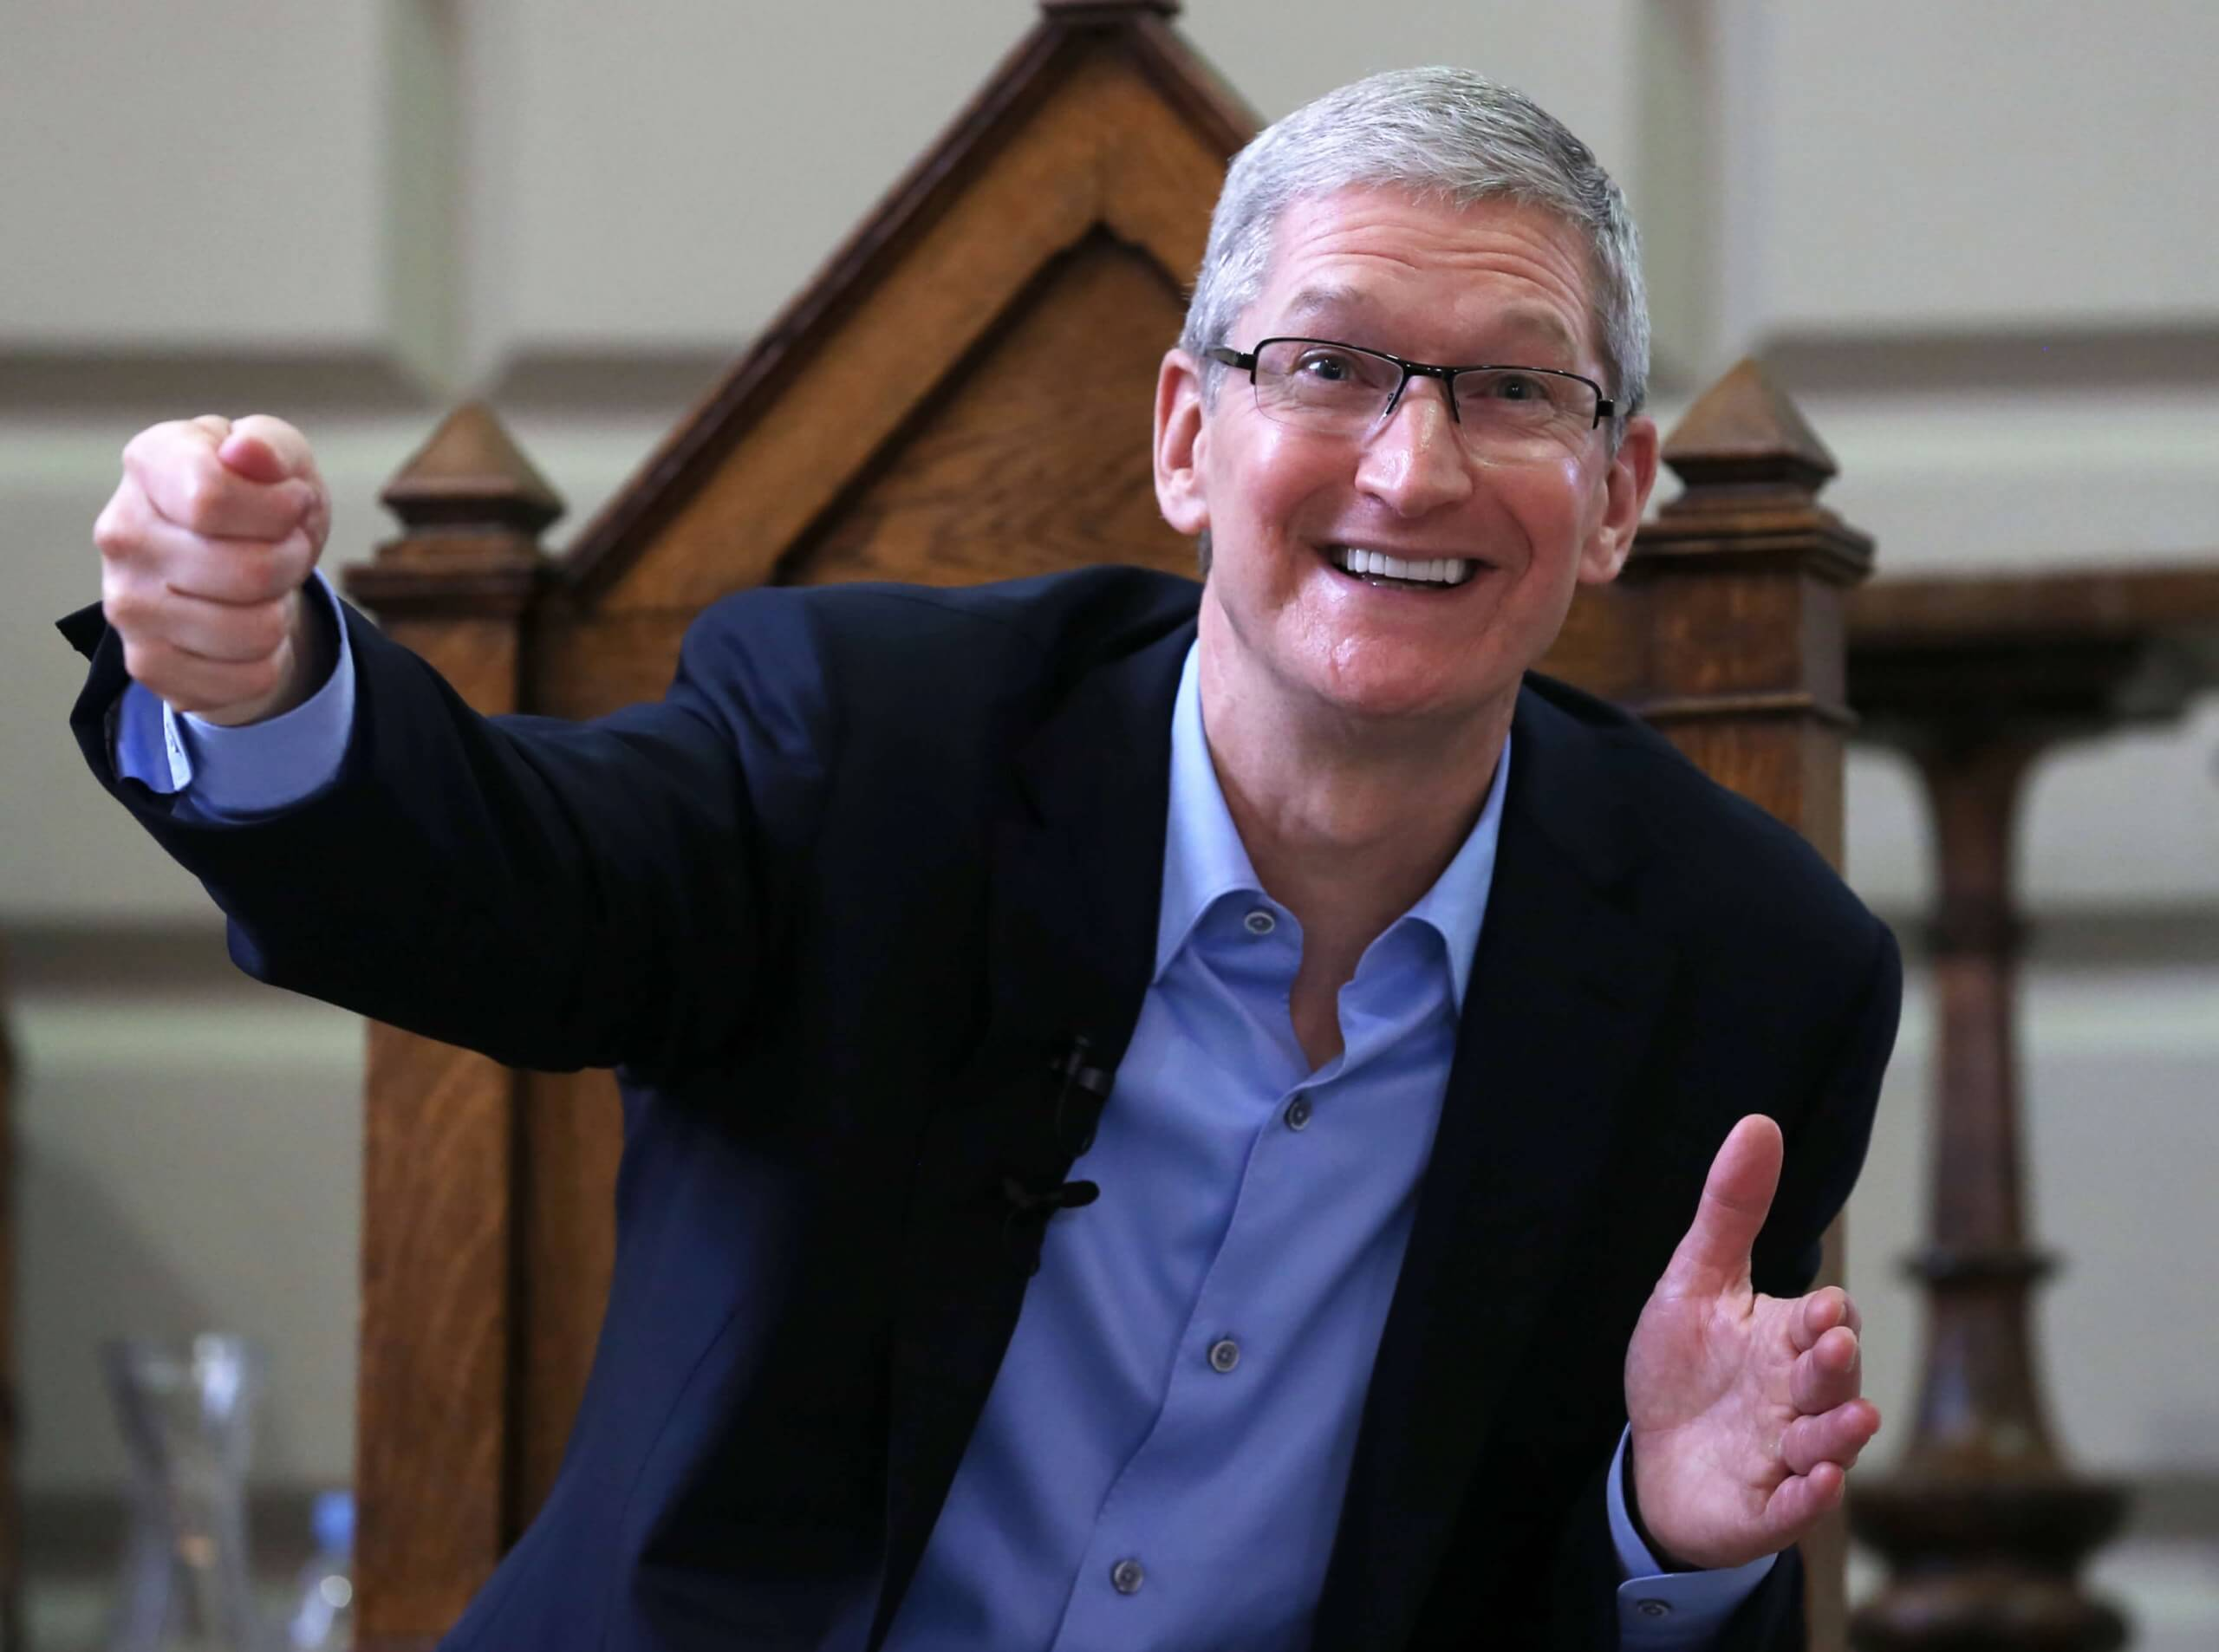 Court grants Apple a temporary restraining order against man who was stalking Tim Cook